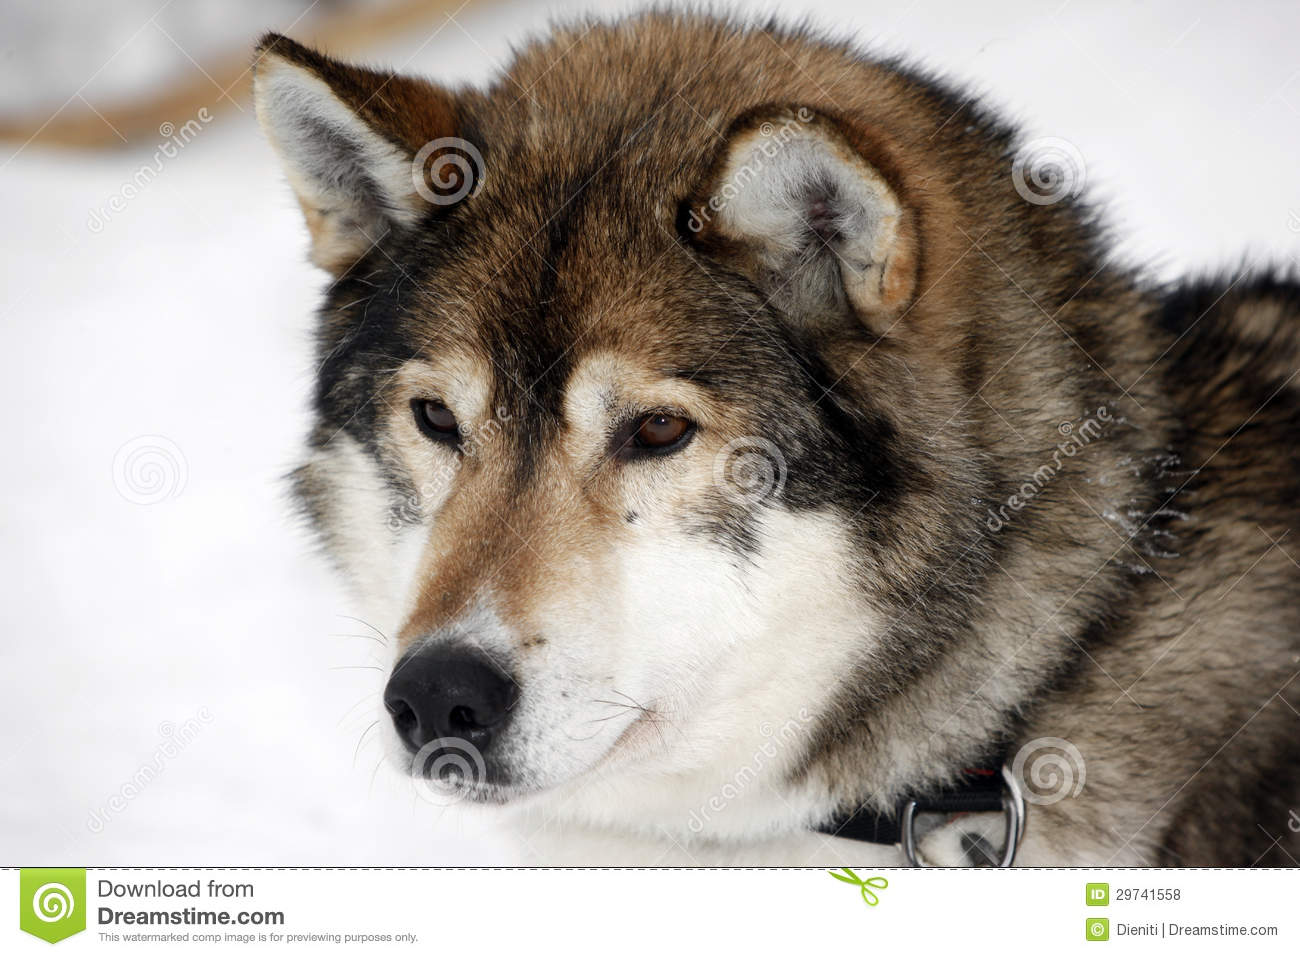 ... brown eyes in winter snow, wolf-like, Sled dog or sleigh dog, mushing